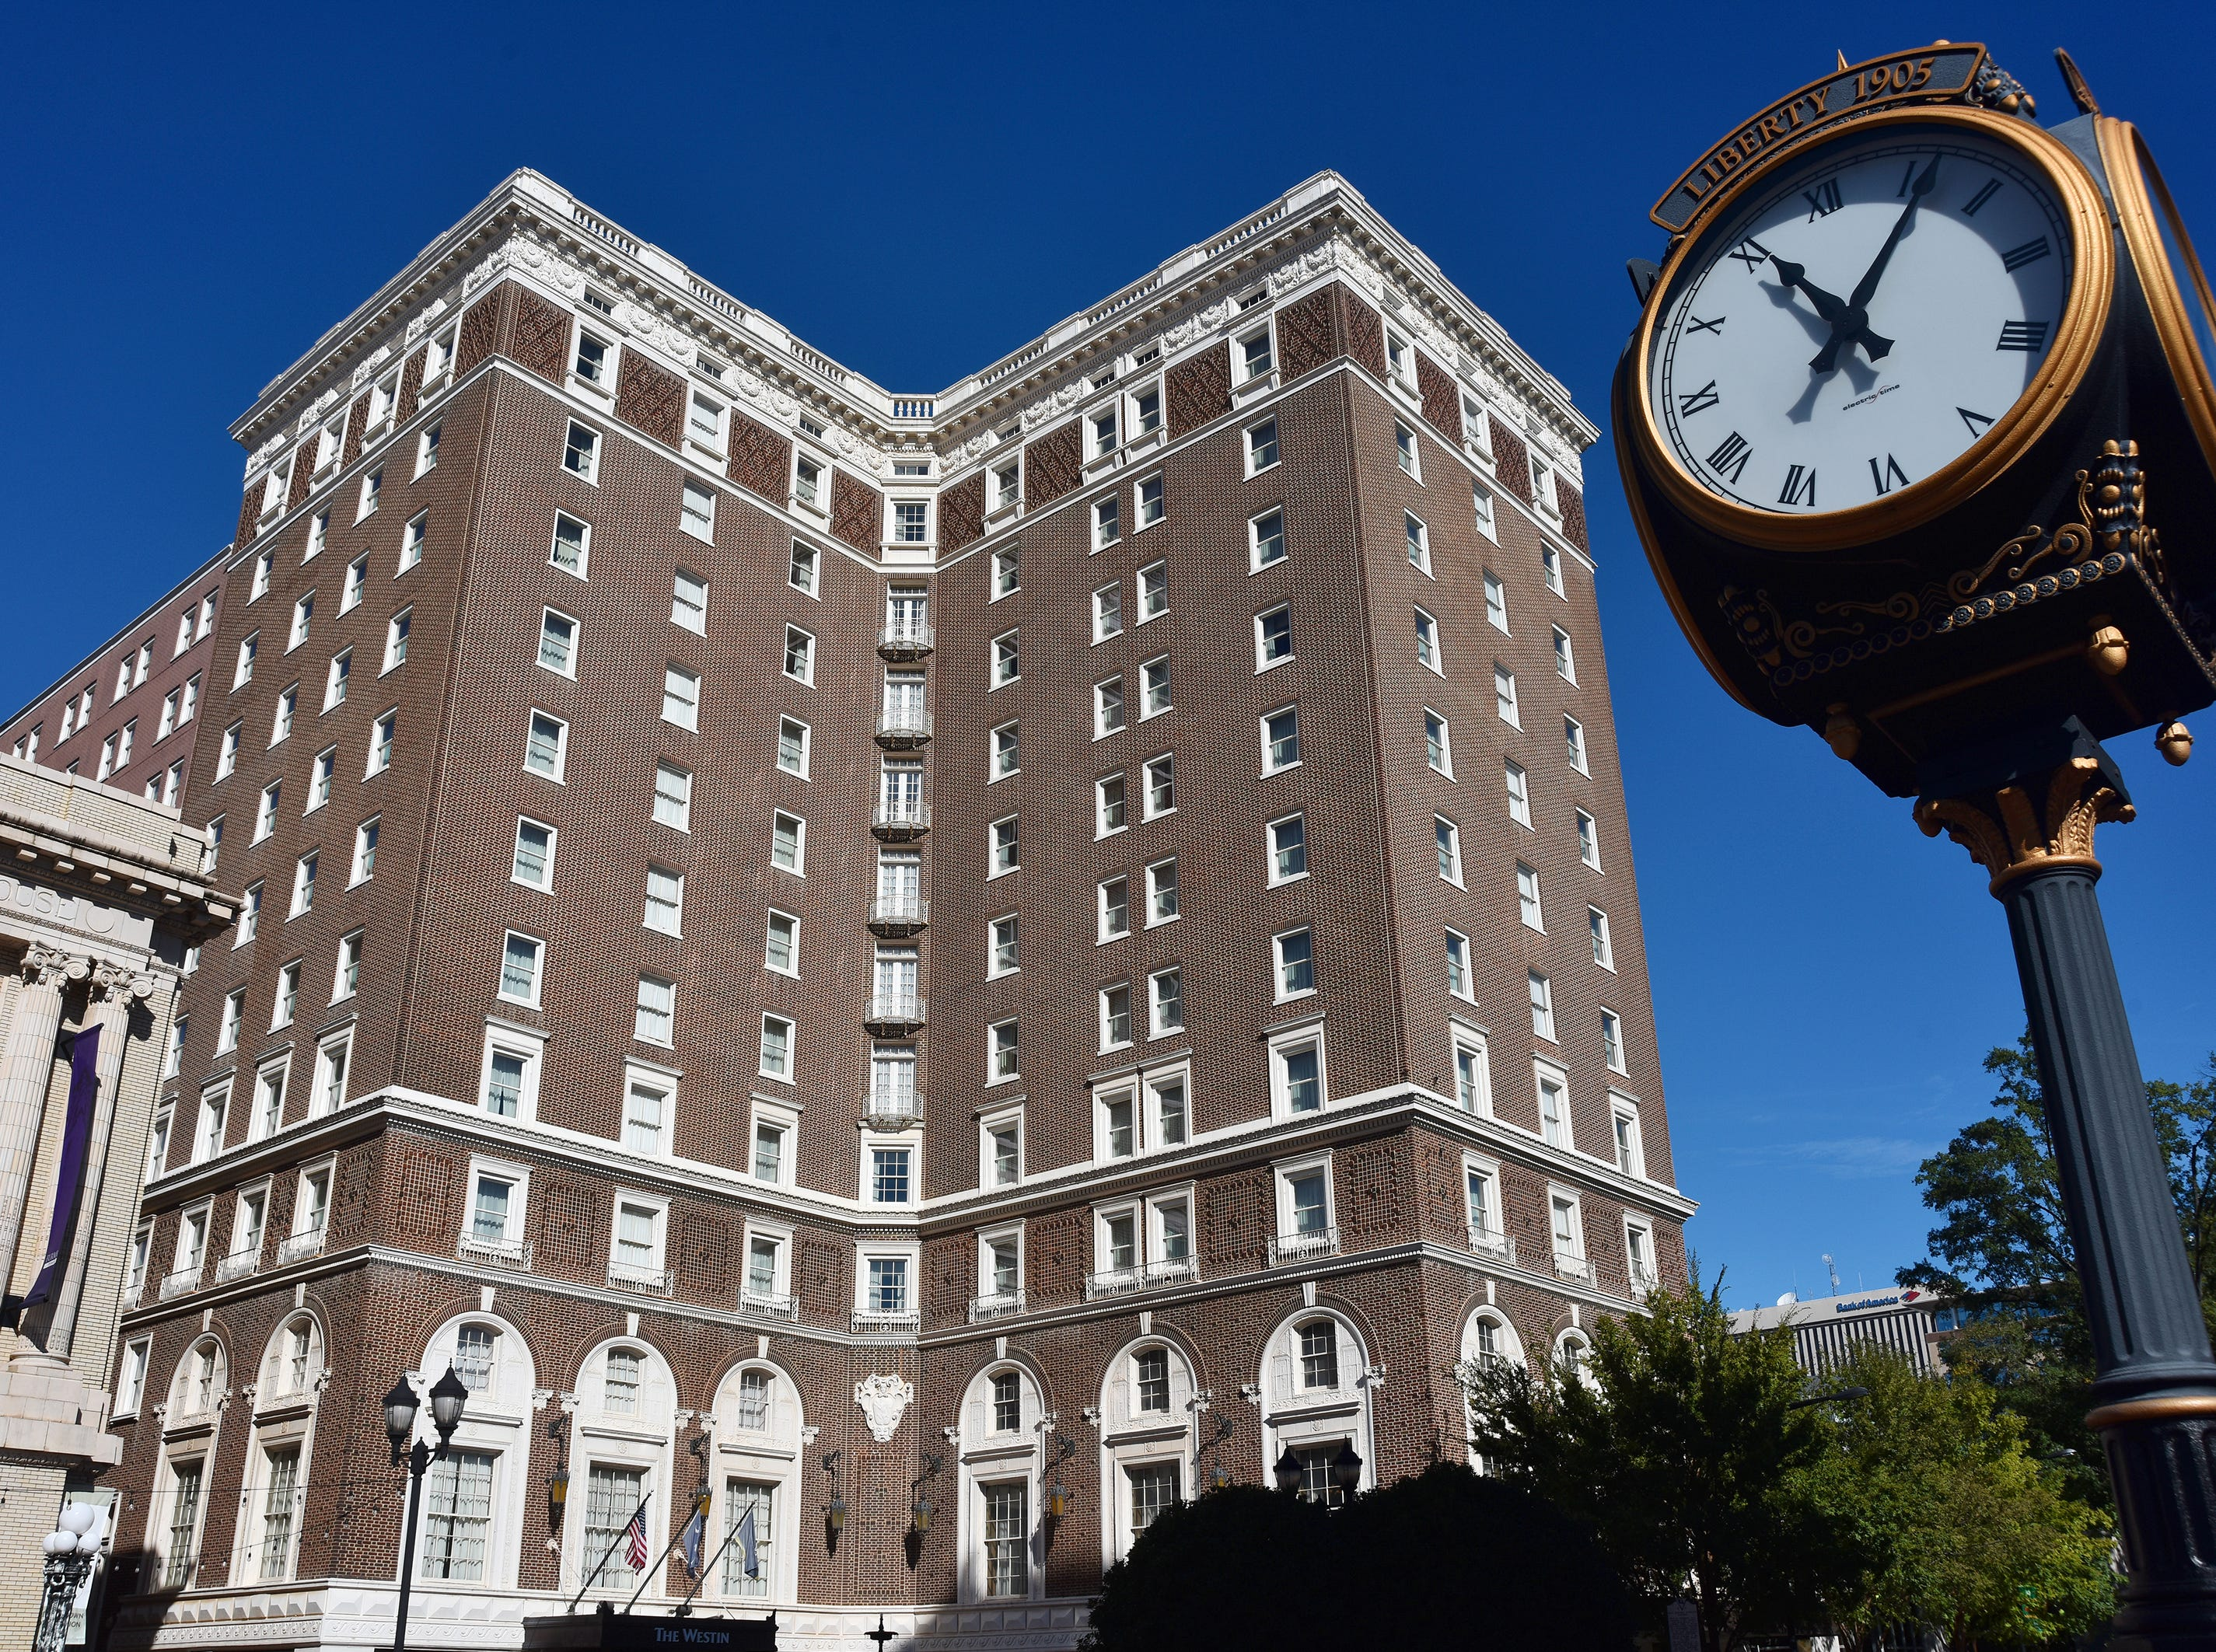 The Westin Poinsett Hotel in downtown Greenville.